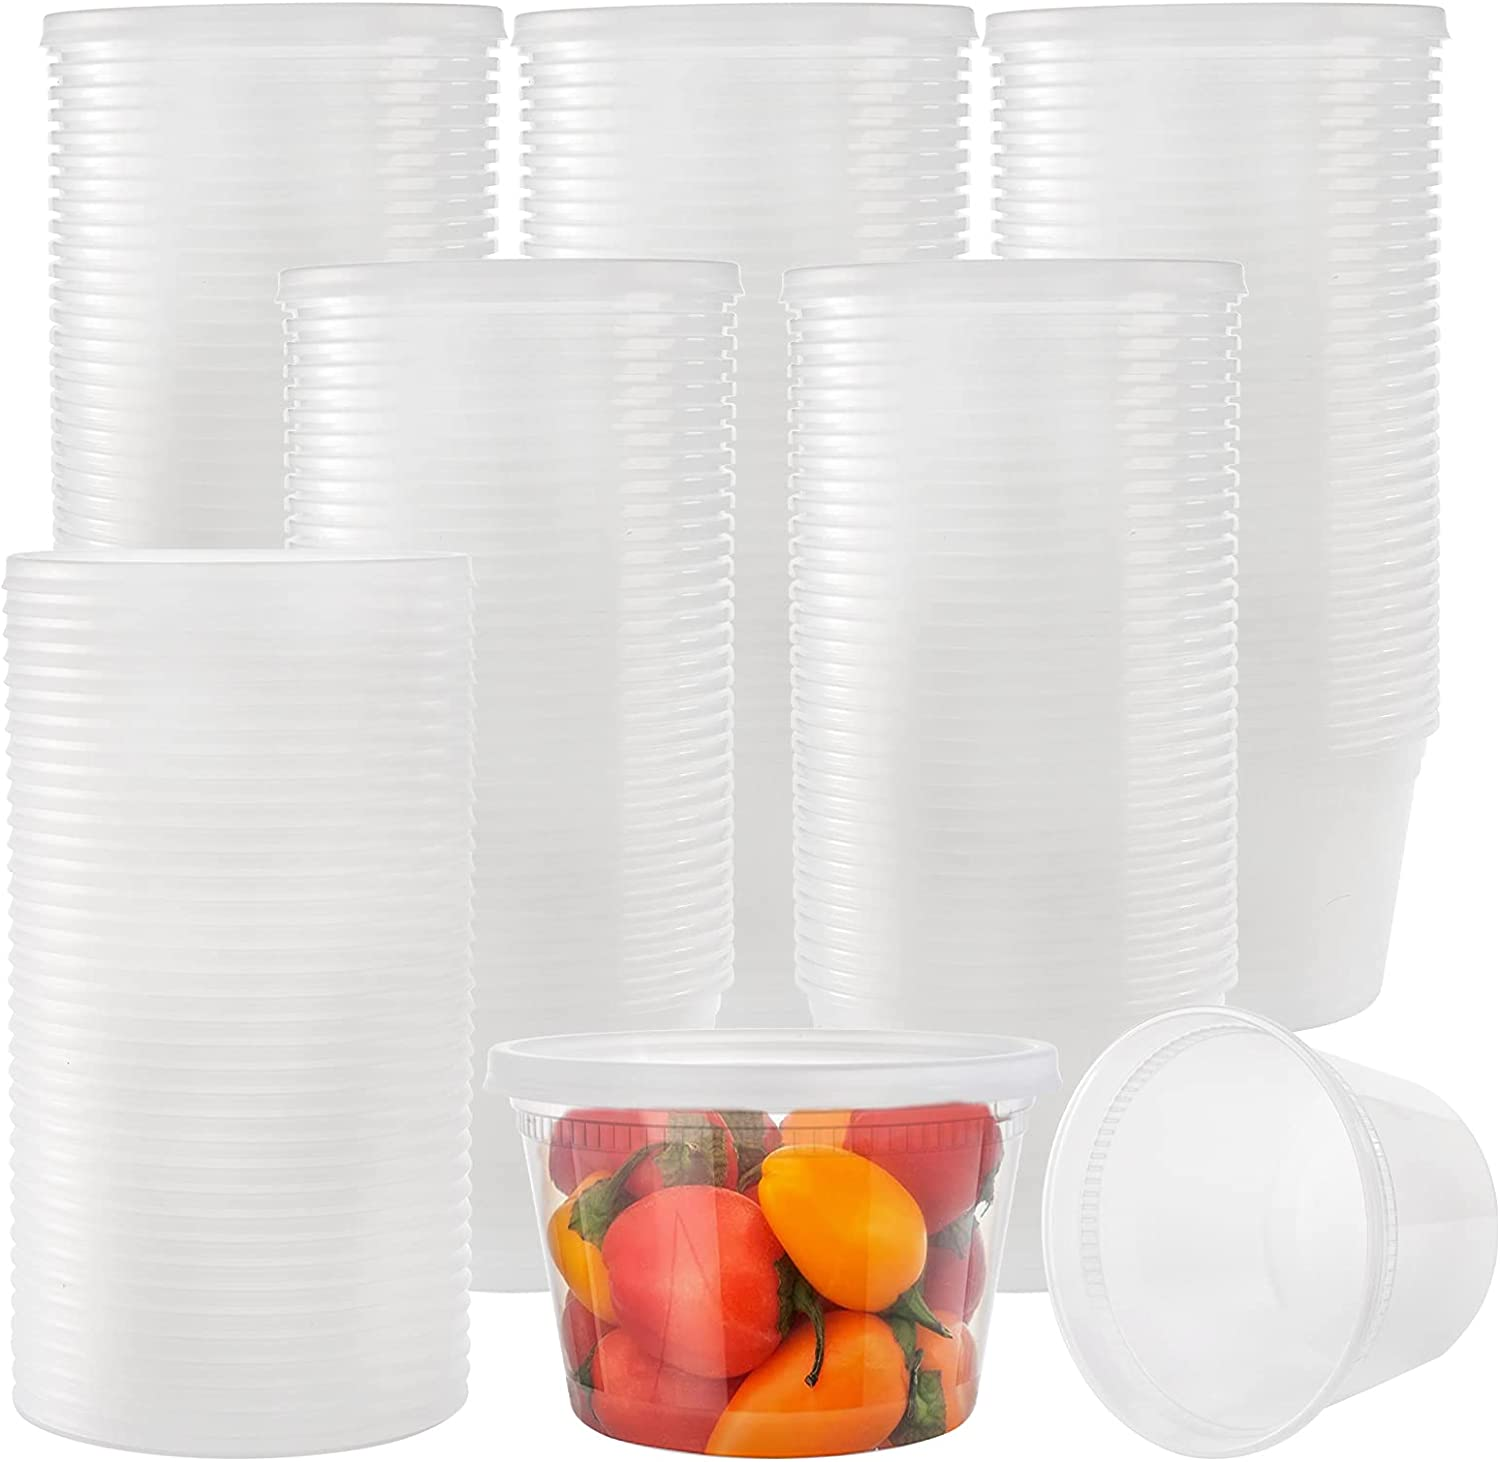 Lawei 70 Pack Plastic Deli Food Containers with Lids - 16 Oz Food Storage Containers Freezer Deli Cups for Soup, Party Supplies, Meal Prep and Portion Control